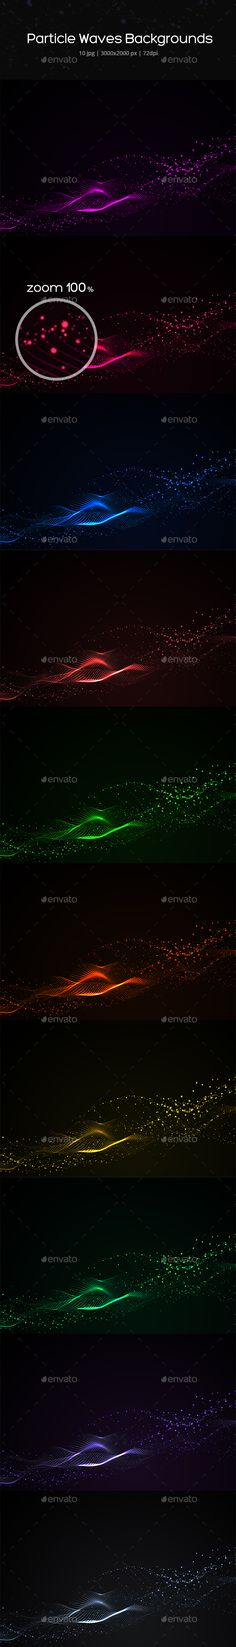 Particle Waves Backgrounds - Abstract Backgrounds